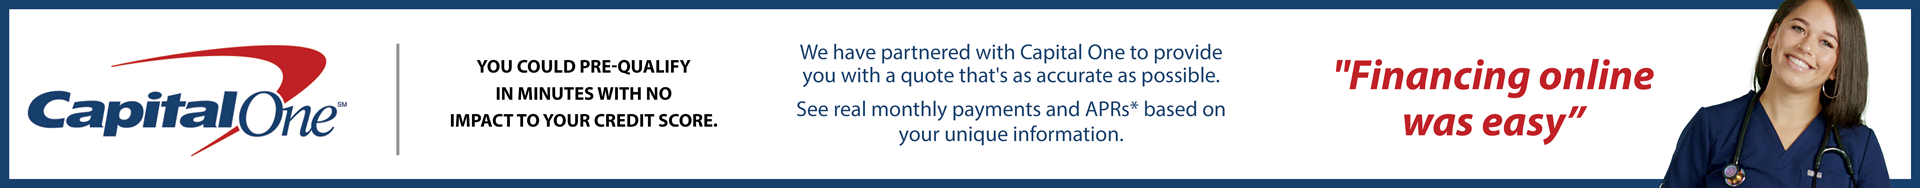 Capital One Banner